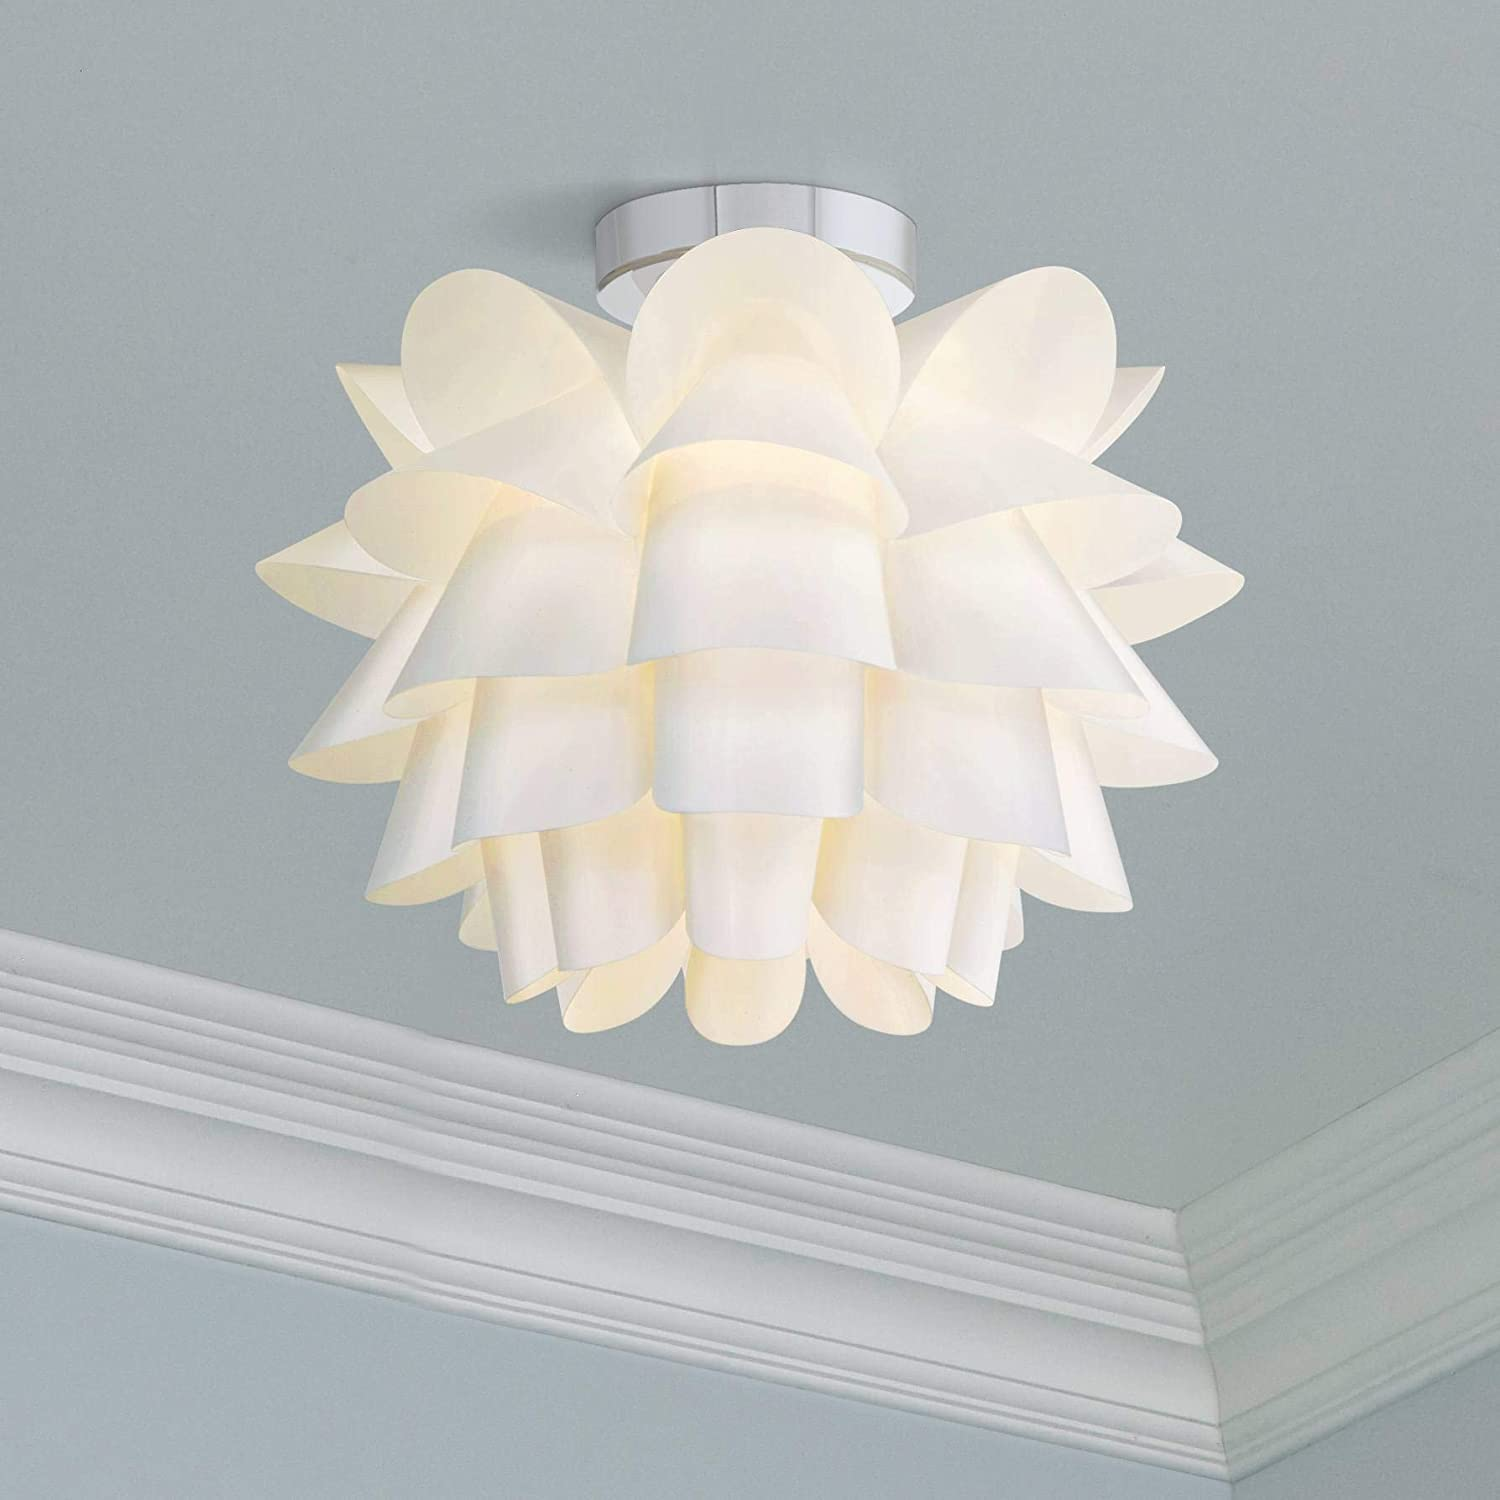 Modern ceiling light flush mount fixture white flower 15 3 4 for bedroom kitchen possini euro design ceiling pendant fixtures amazon com